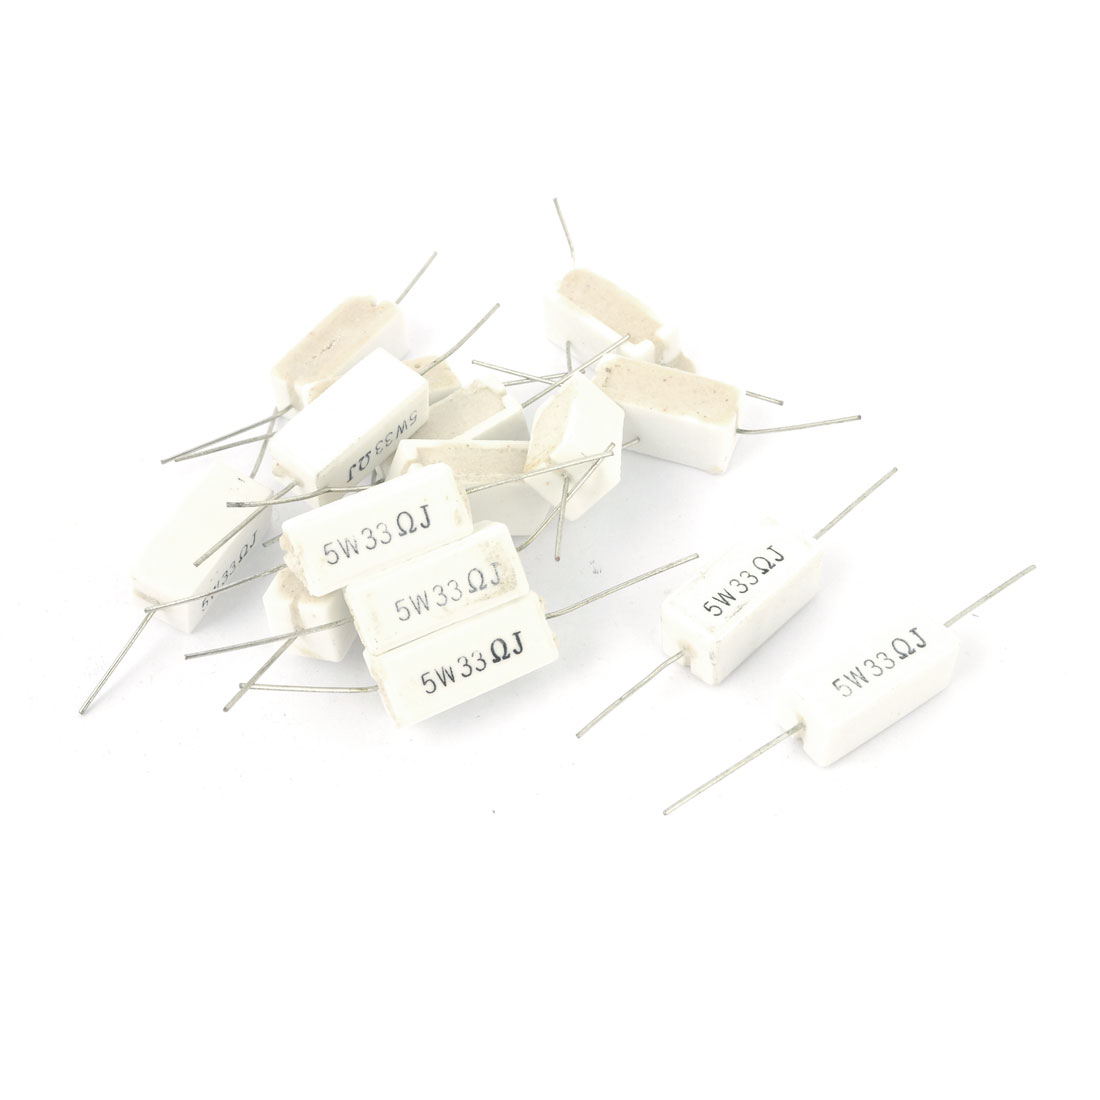 15 Pcs 5W 33 Ohm 5% Radial Lead Ceramic Cement Power Resistor